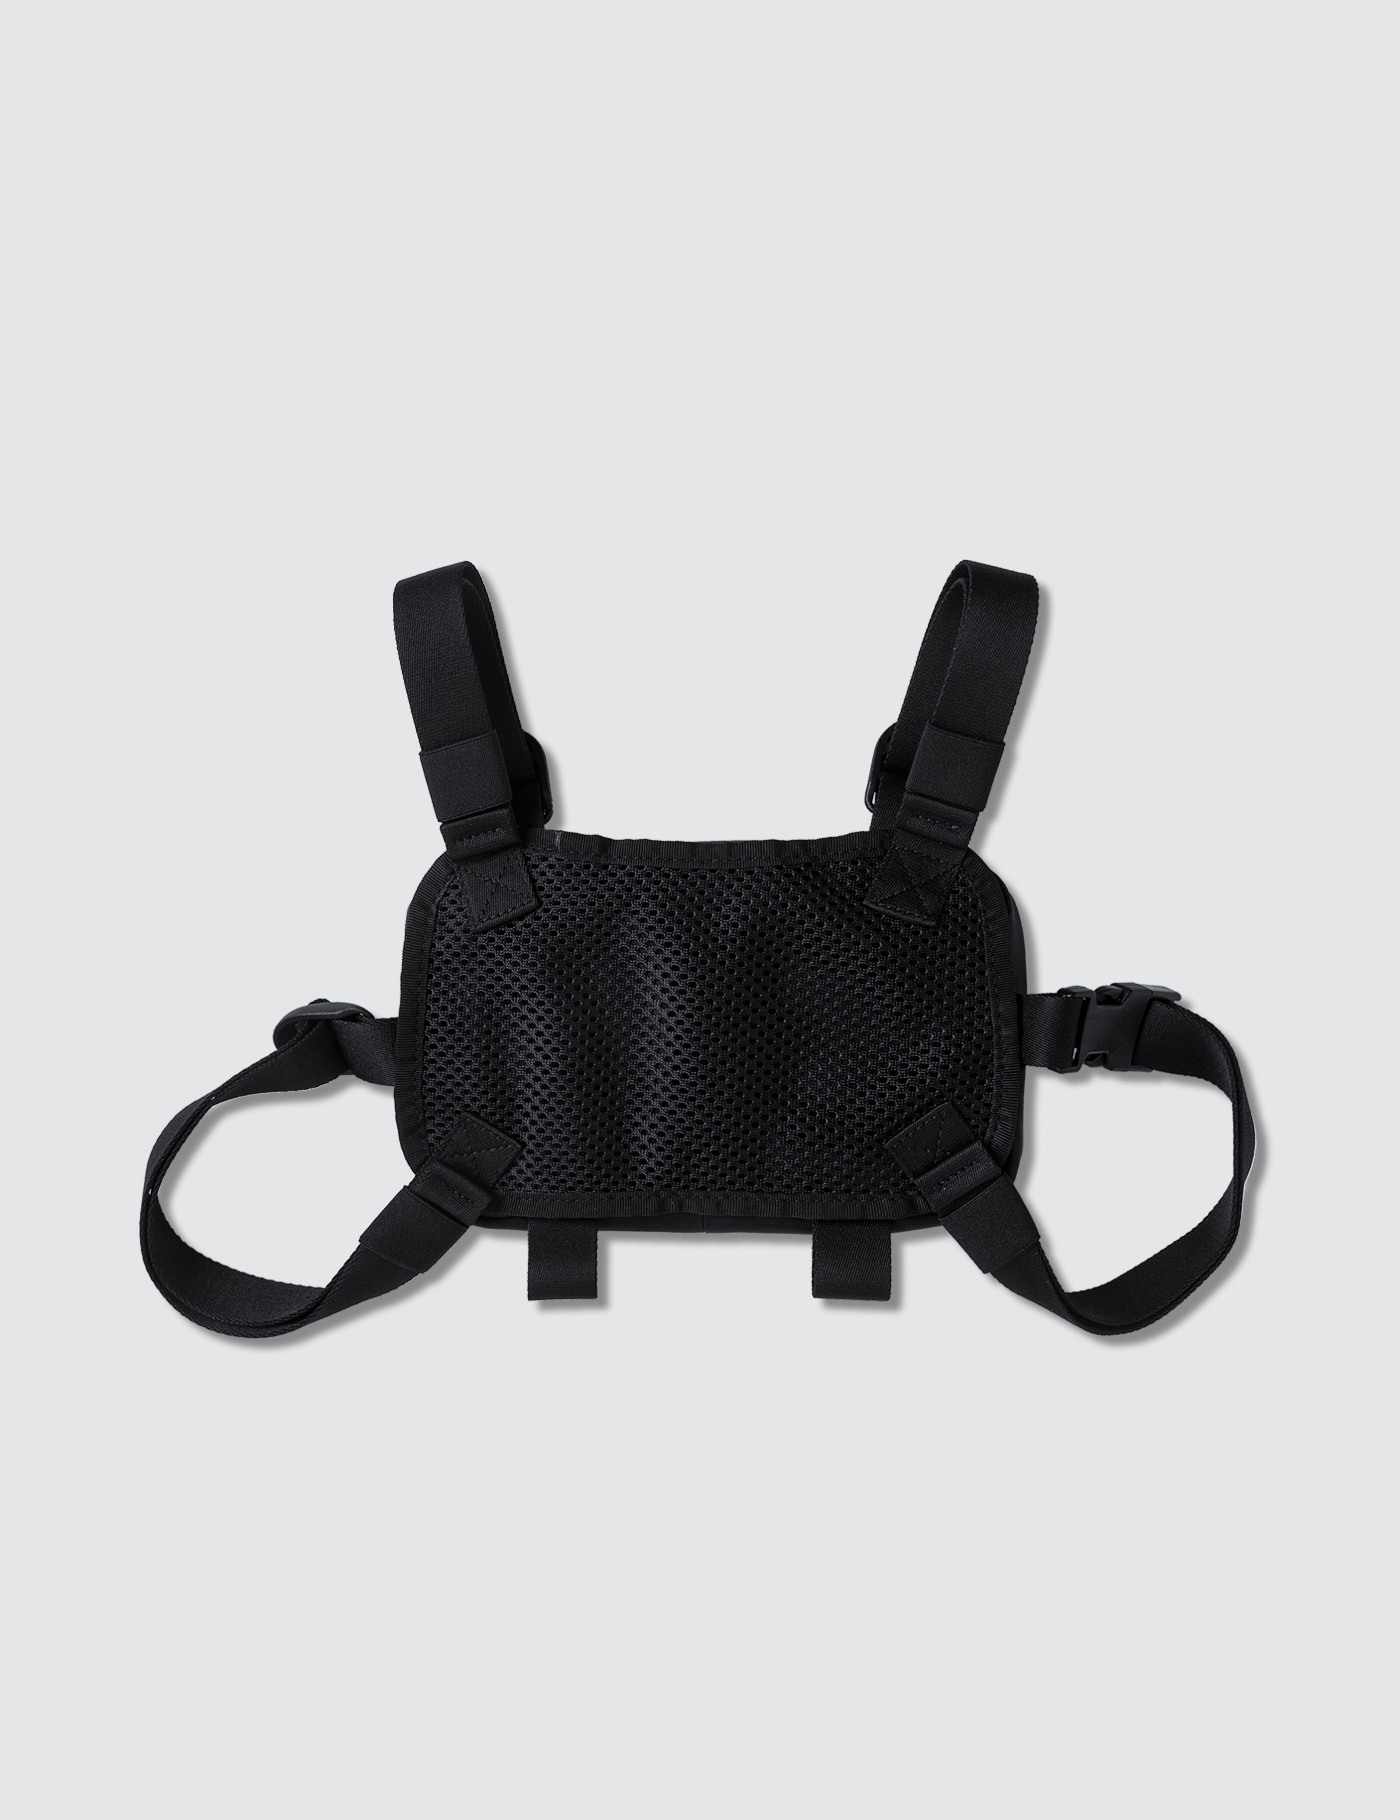 47c3c0044 Buy Original 1017 ALYX 9SM Mini Chest Rig at Indonesia